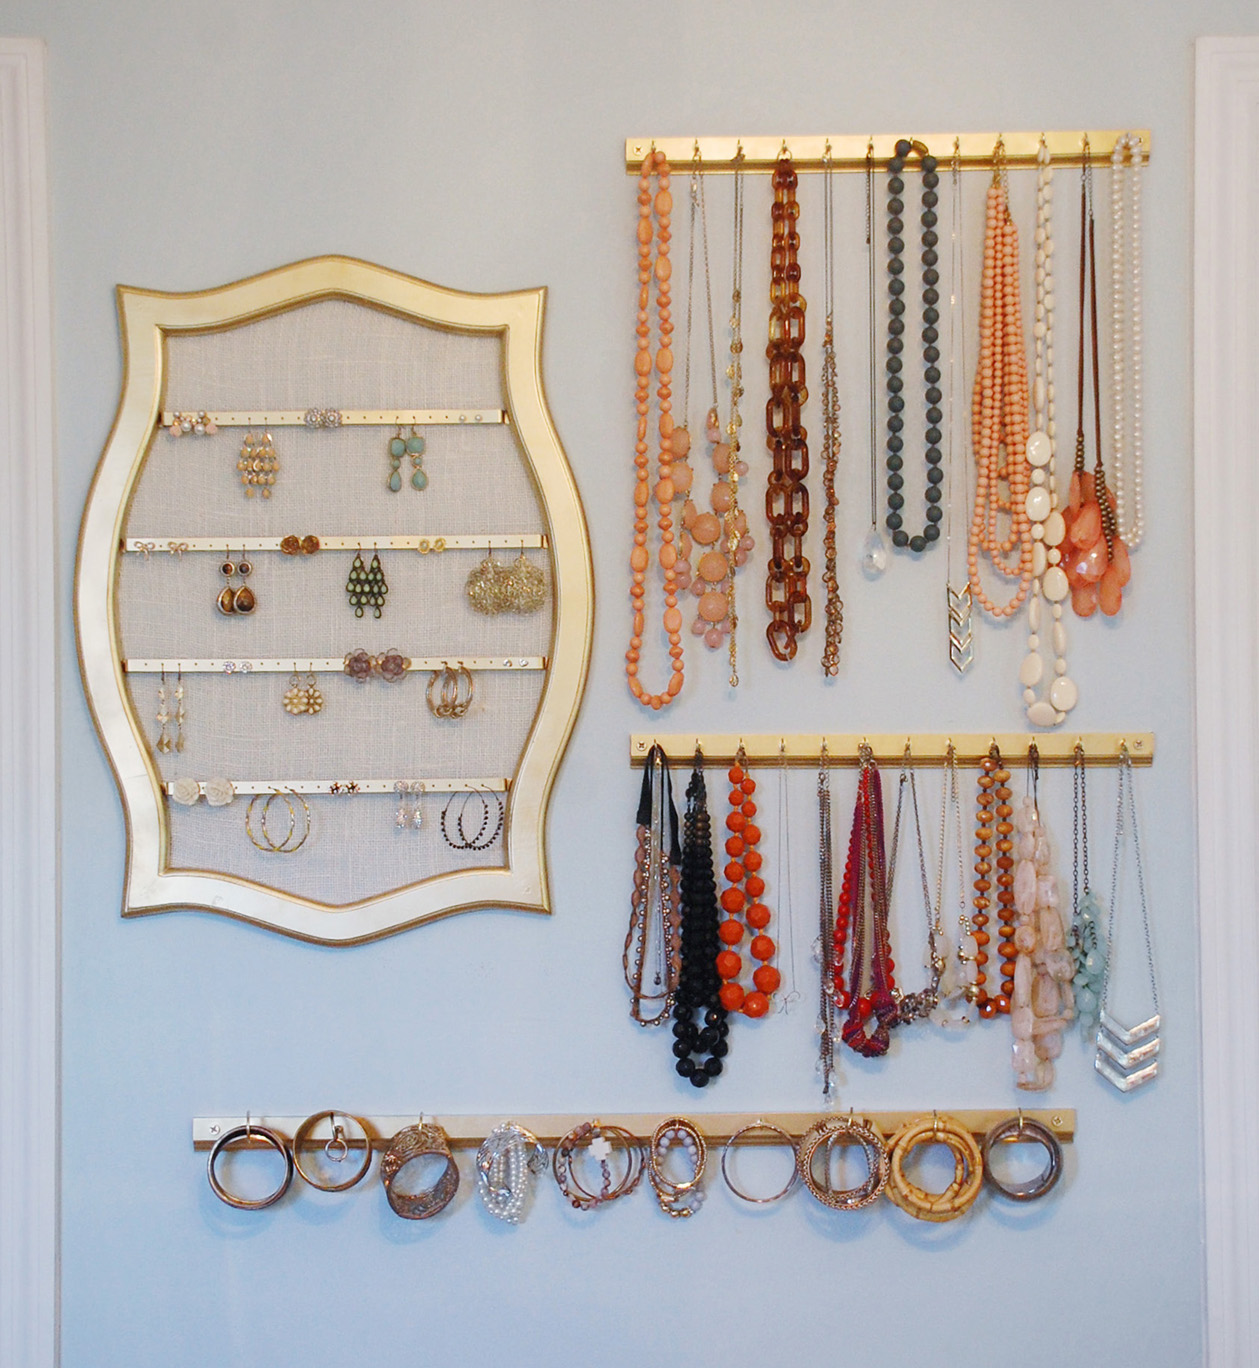 wall-display-how-to-organize-jewelry-closet-wardrobe-earrings-rings-necklaces-storage-hang-up-arrange.jpg